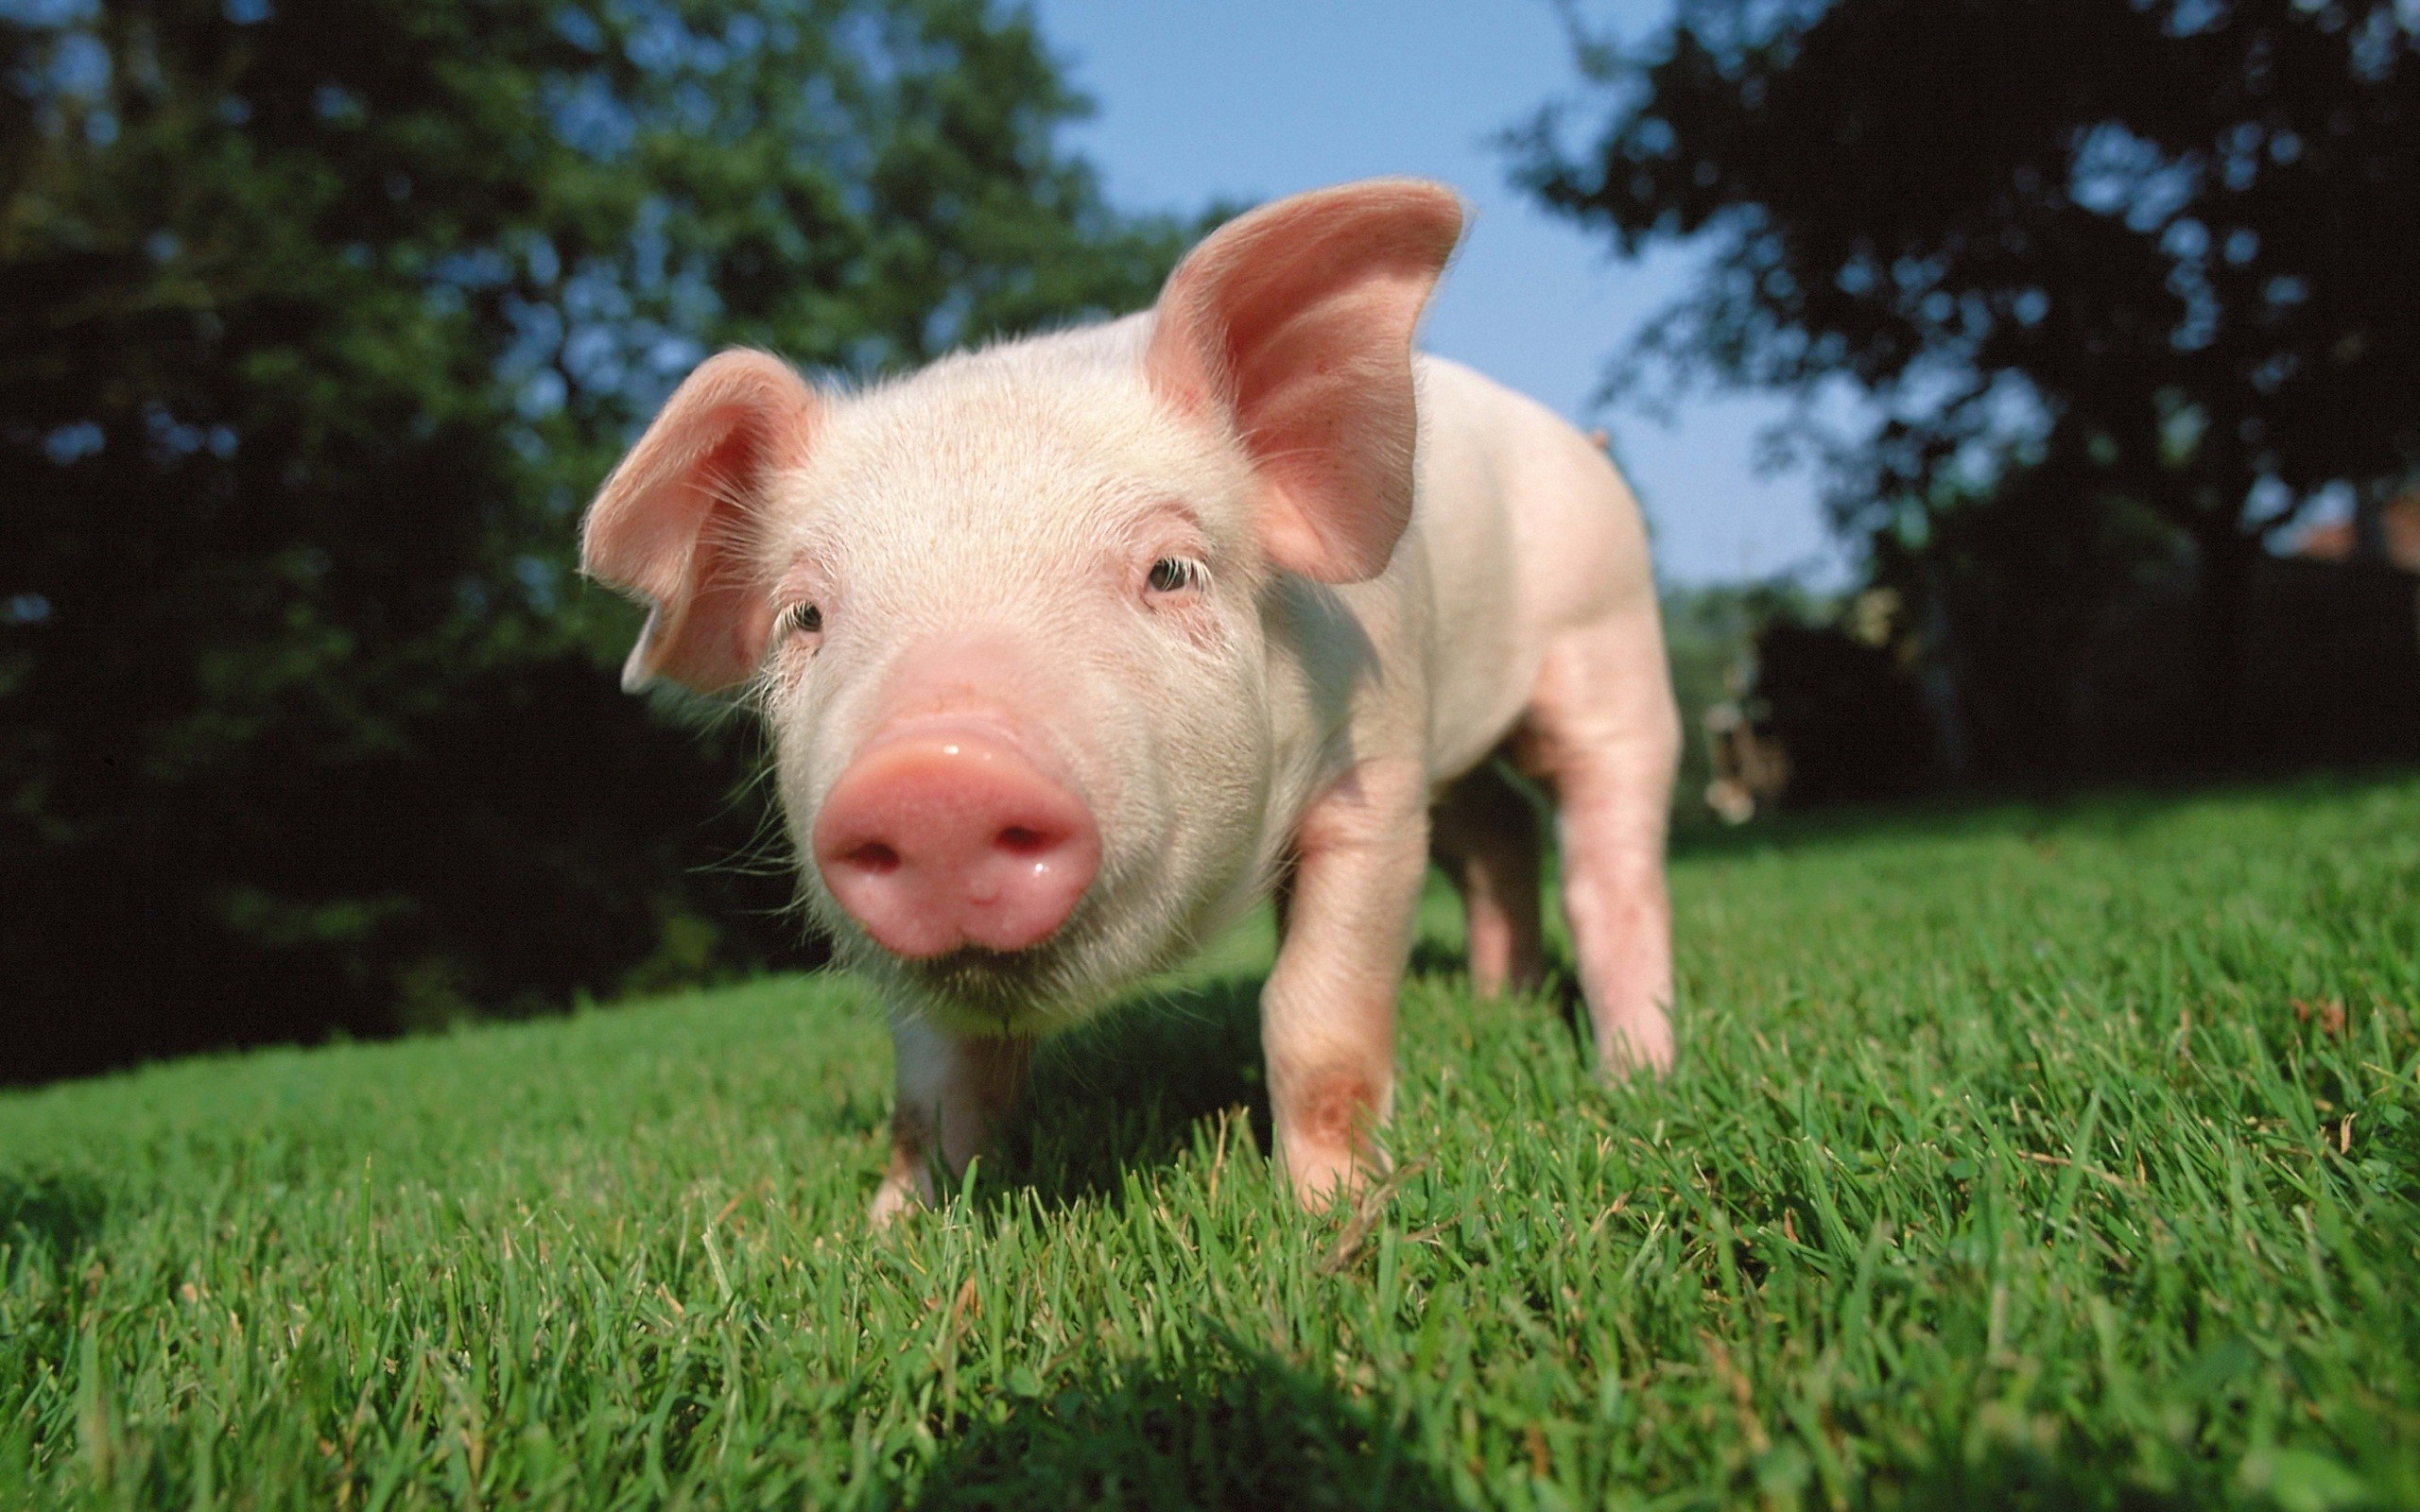 Cute Pig Wallpaper Hd Cute Pig Wallpaper 183 ①